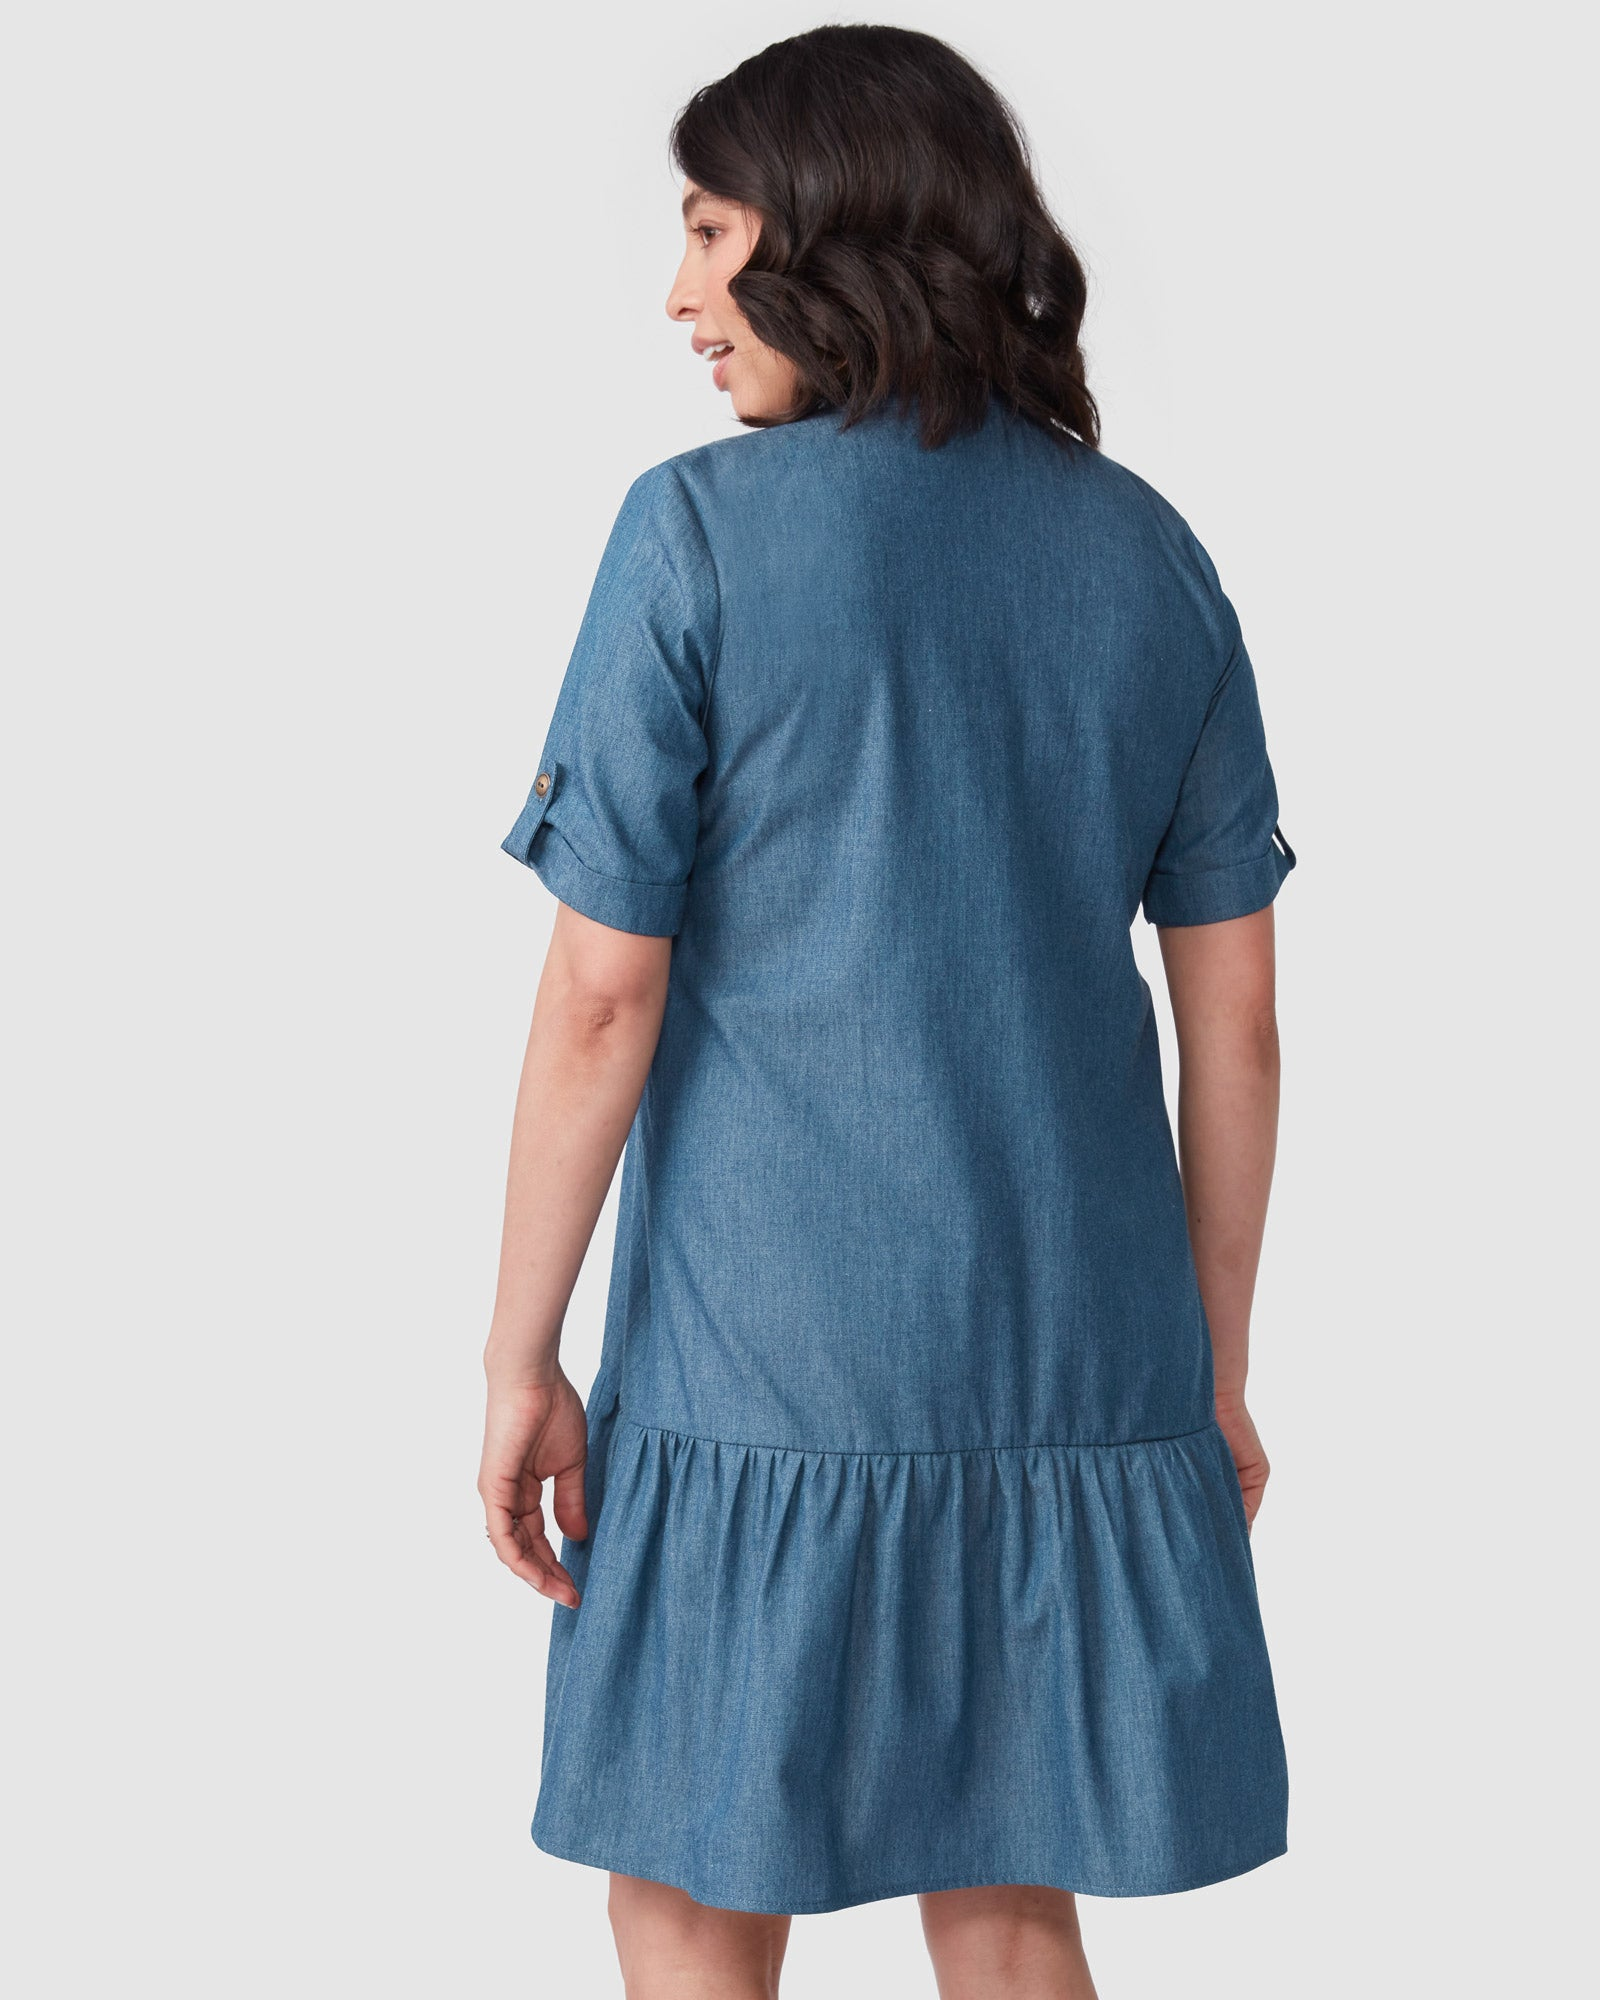 Jolene Nursing Dress